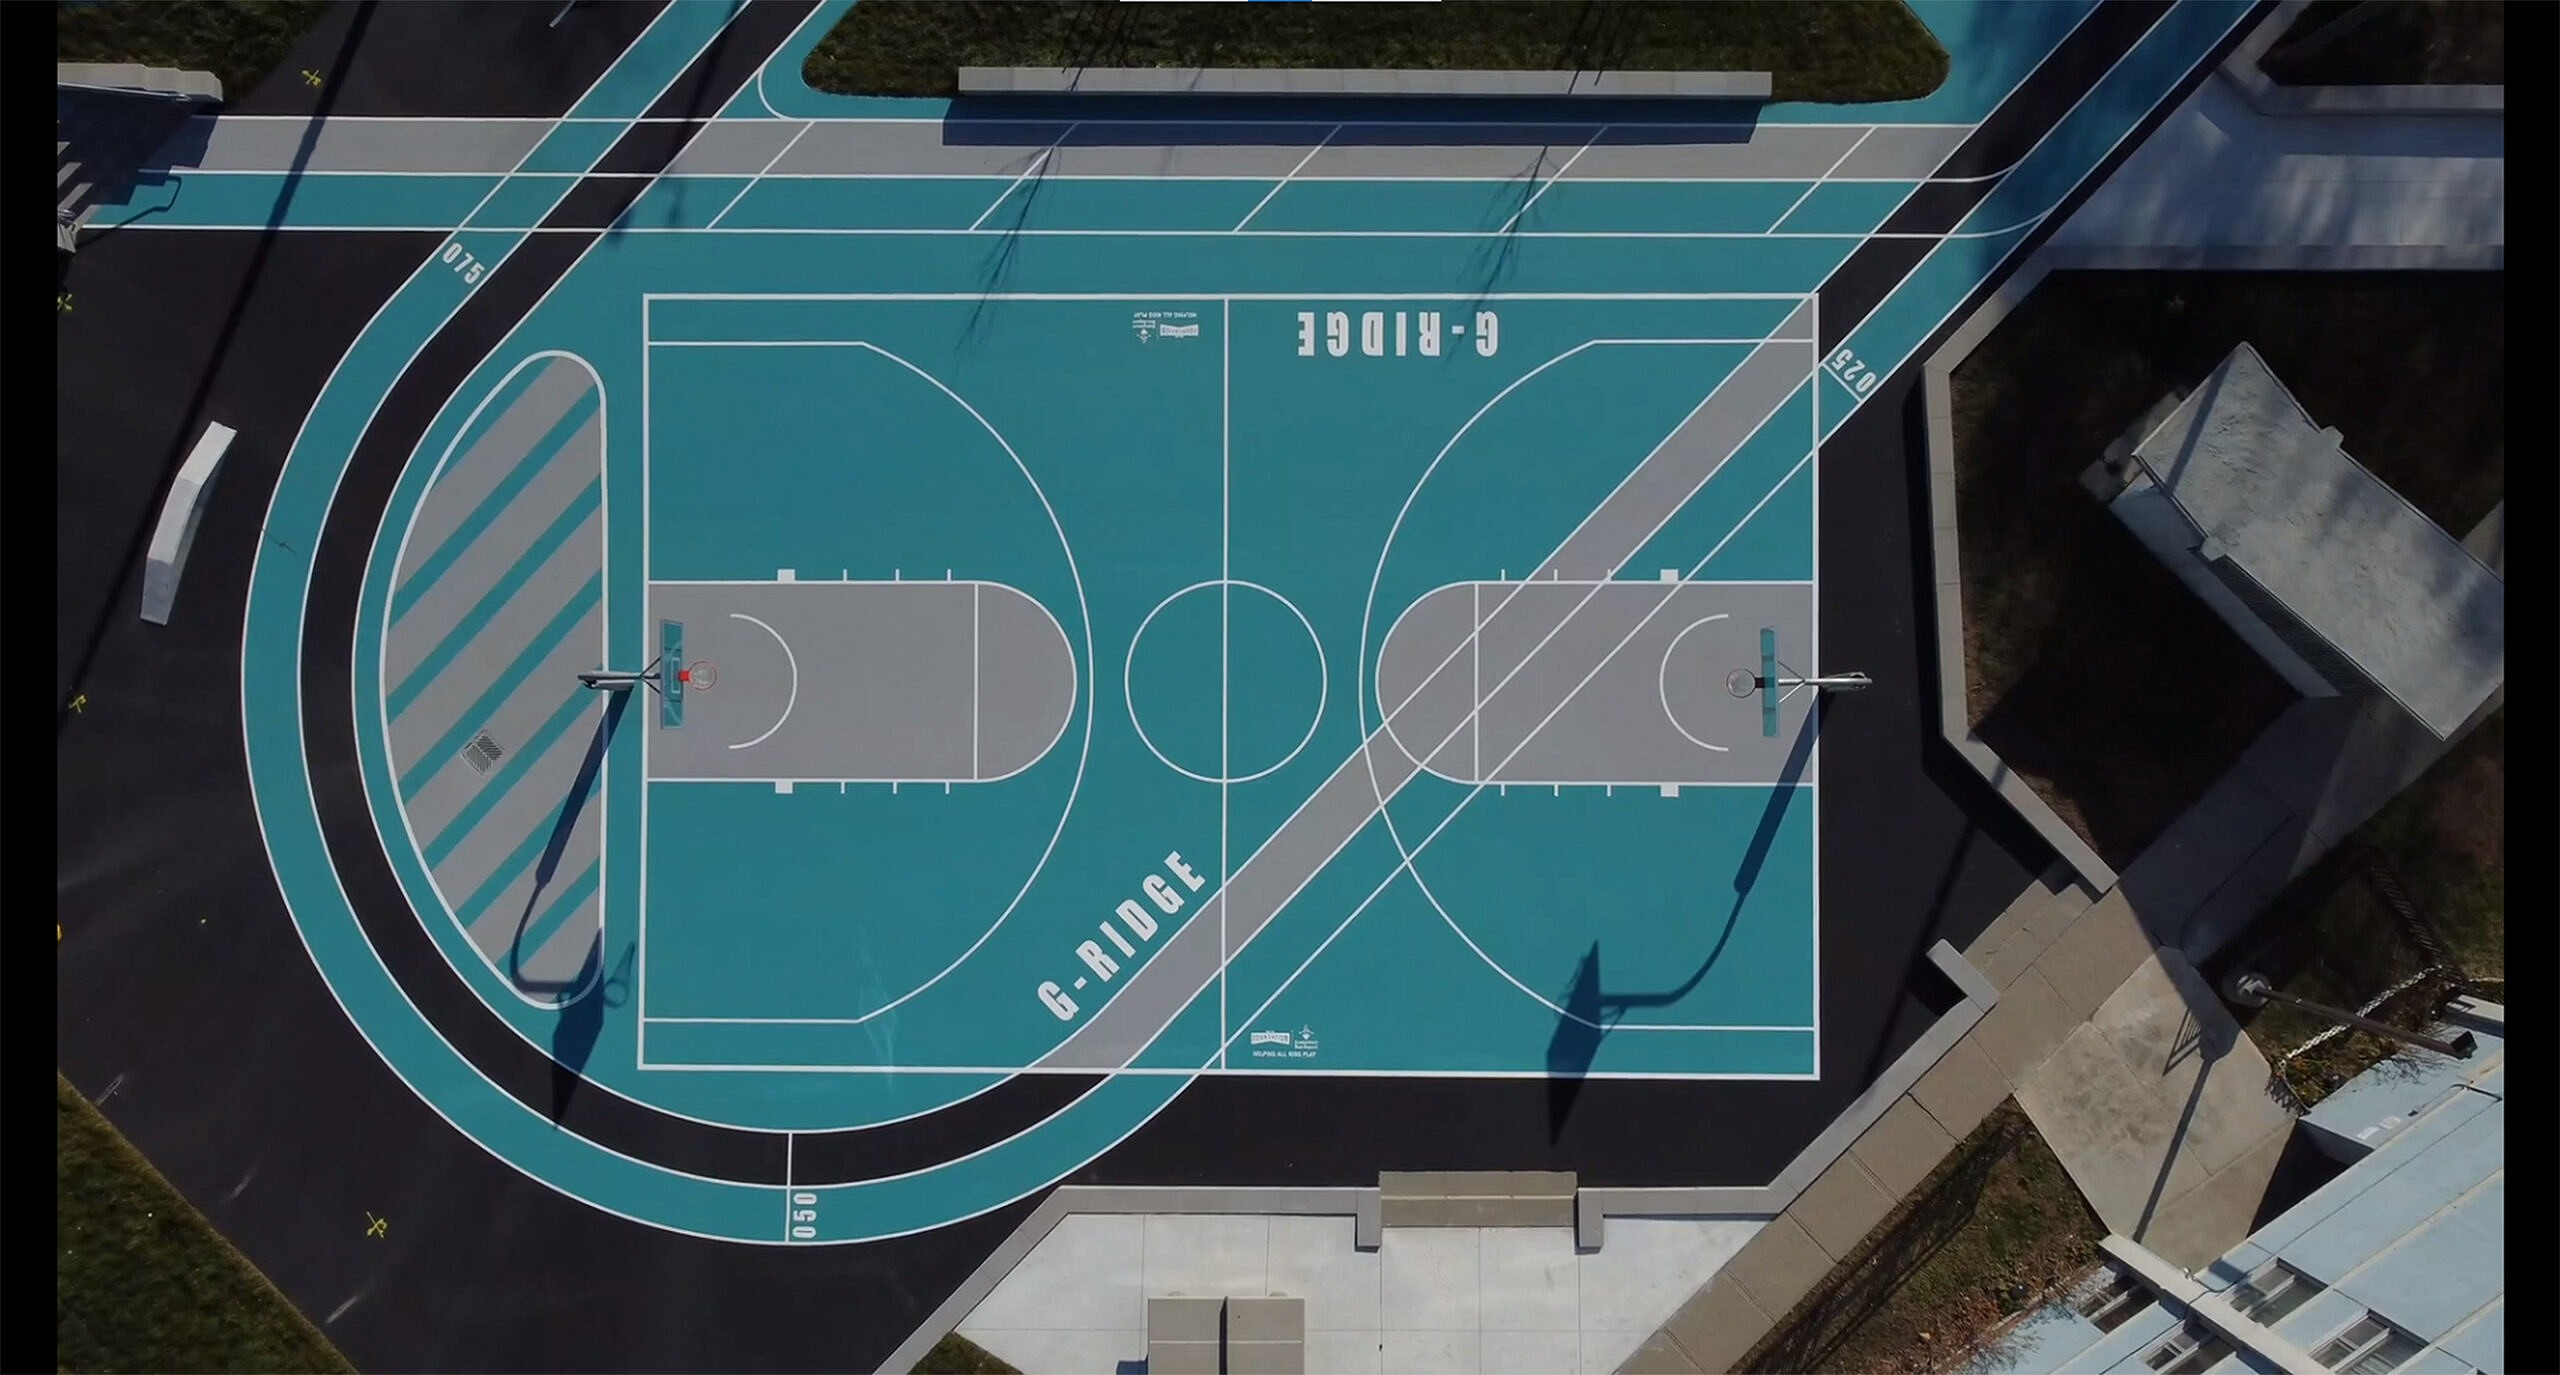 Bird's eye drone view of the gordonridge basketball court